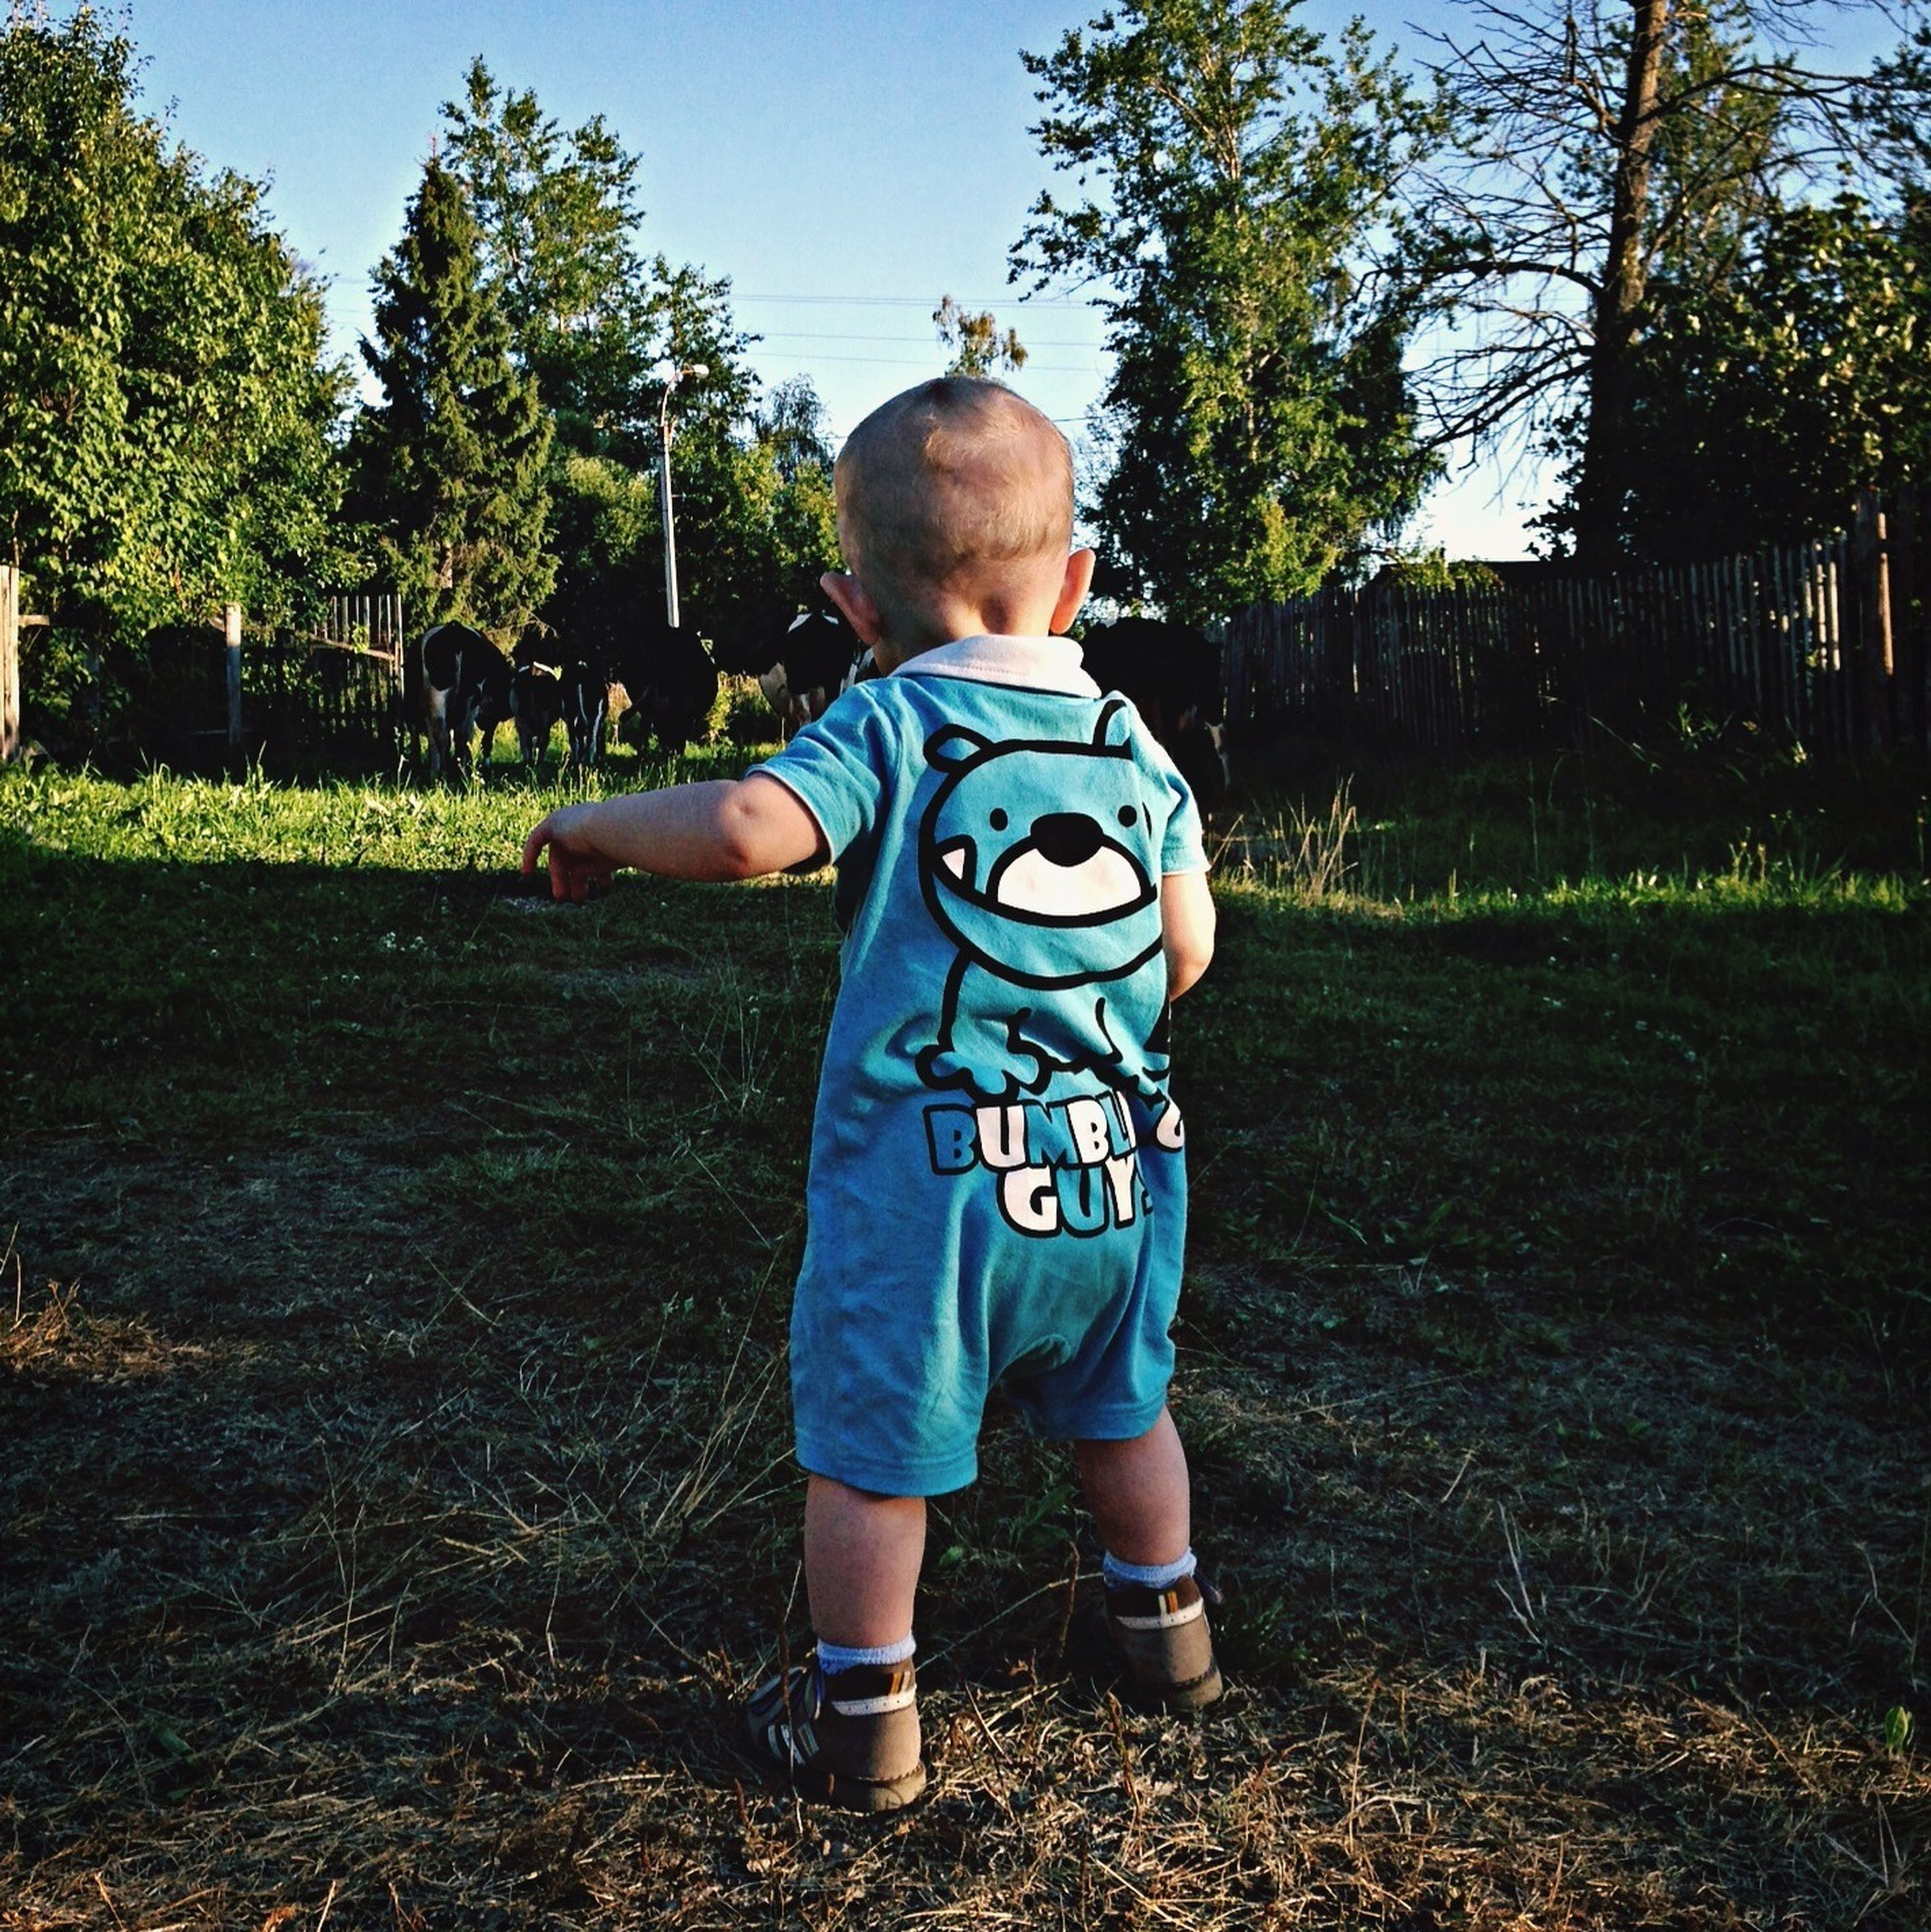 childhood, elementary age, full length, boys, casual clothing, tree, person, innocence, lifestyles, leisure activity, girls, cute, grass, park - man made space, sunlight, day, rear view, playful